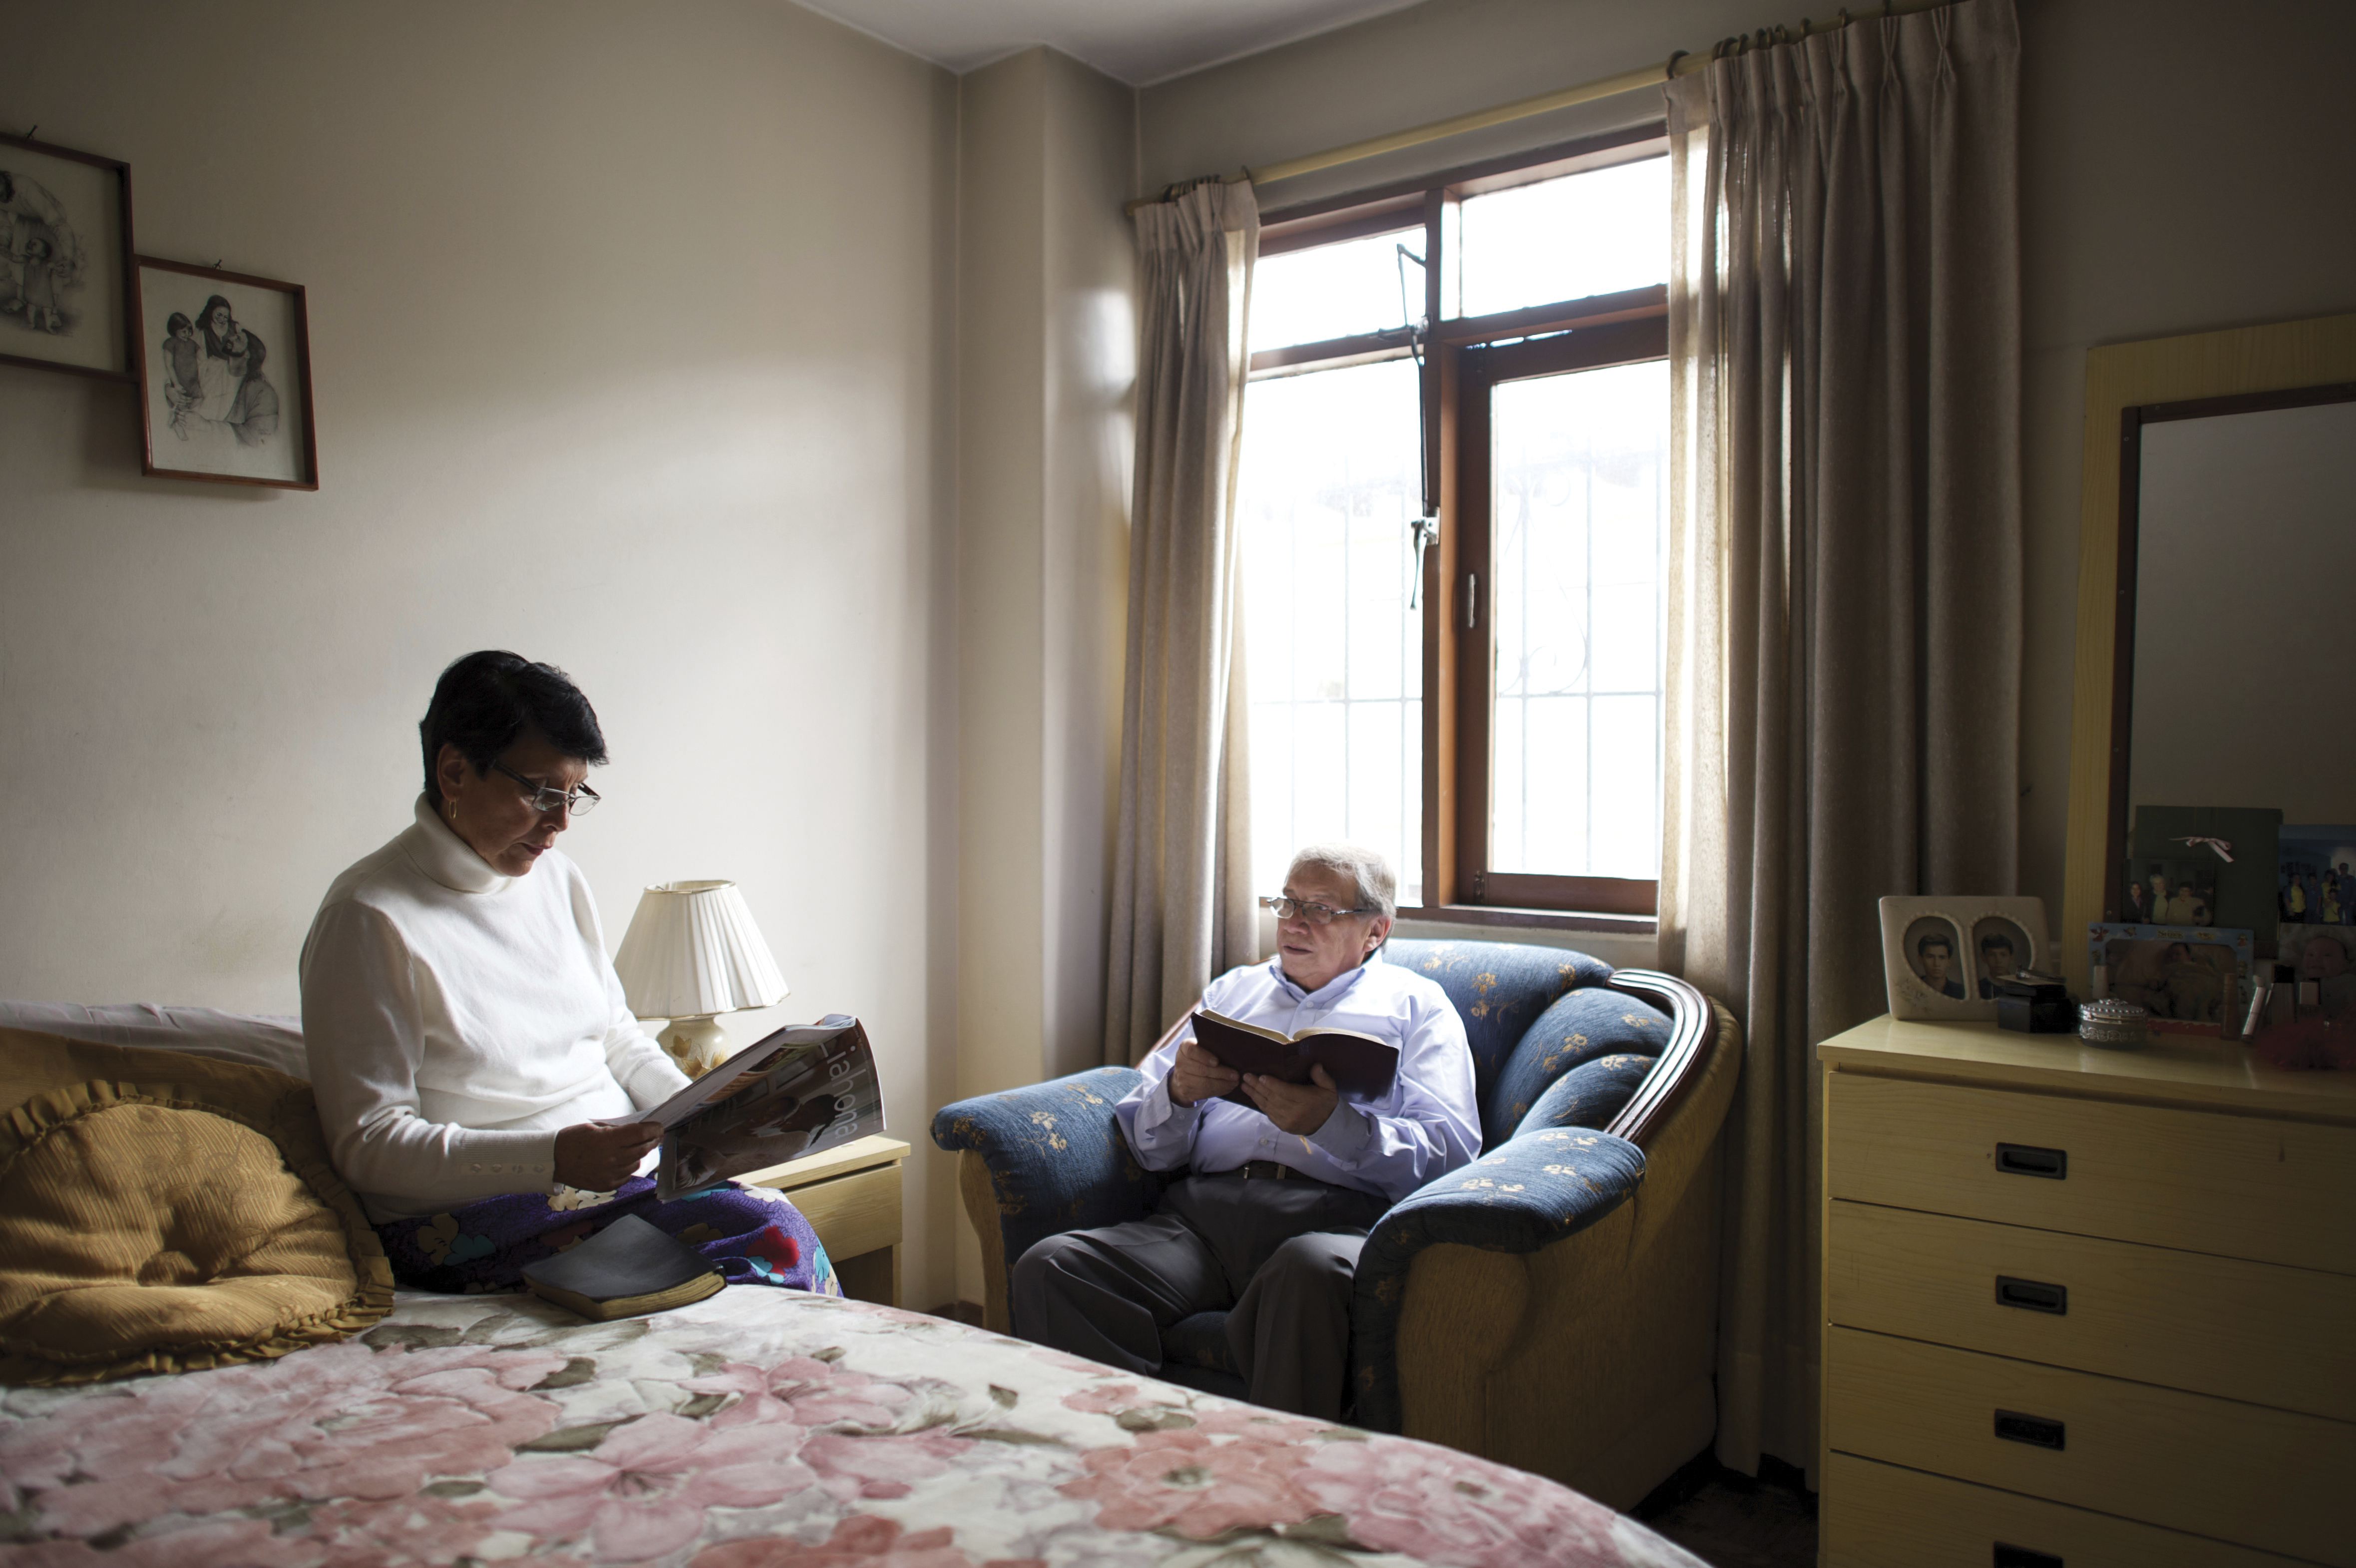 An elderly man reads the scriptures while his wife reads from a Liahona magazine in their bedroom.